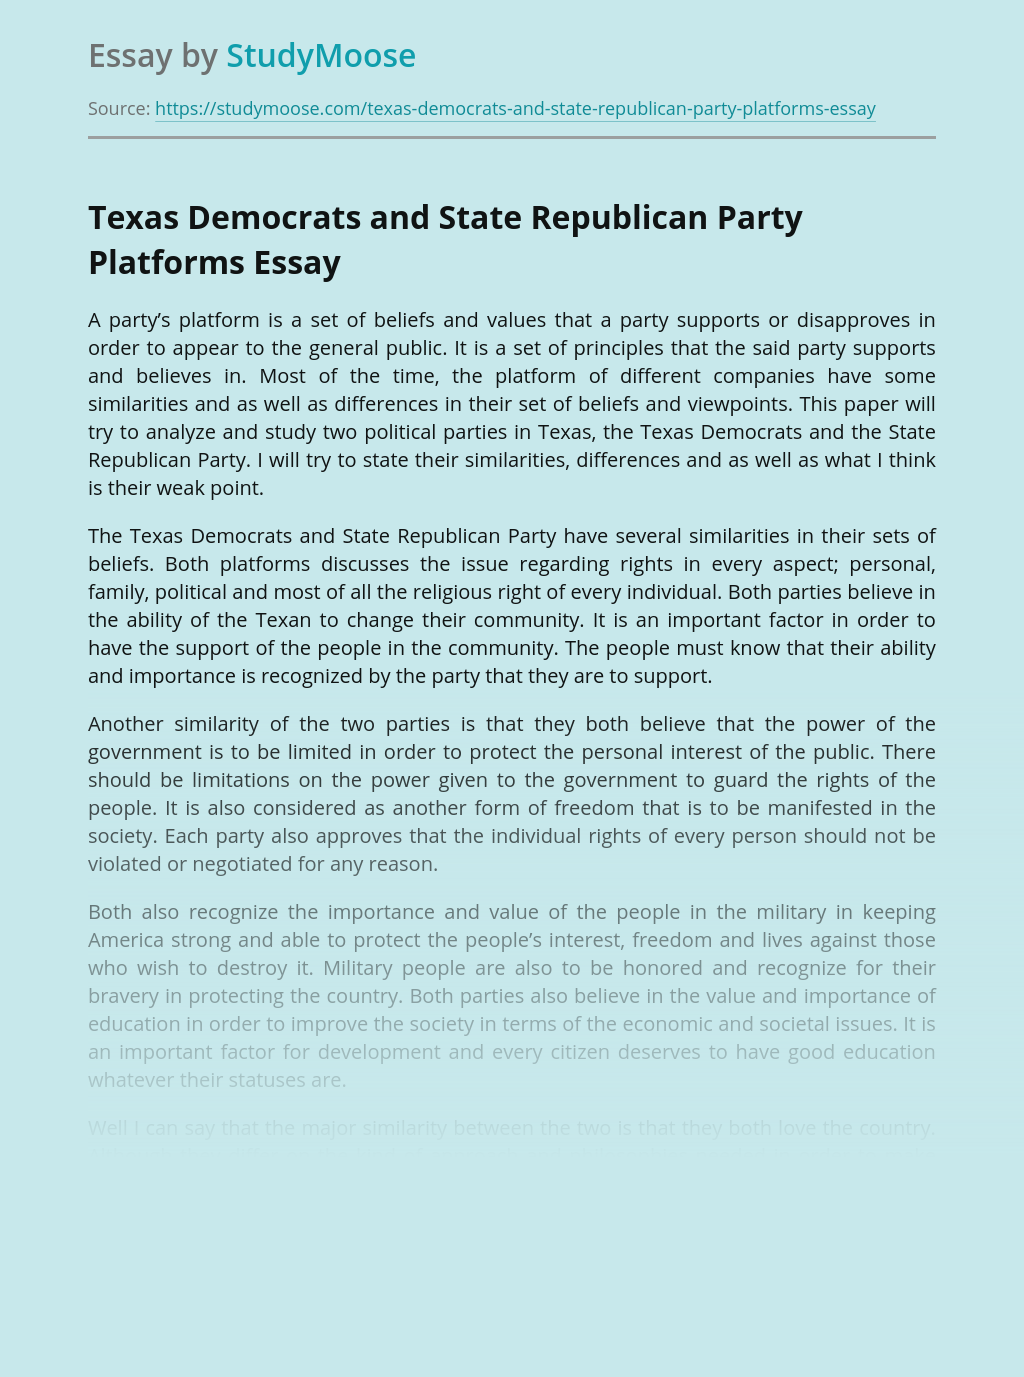 Texas Democrats and State Republican Party Platforms